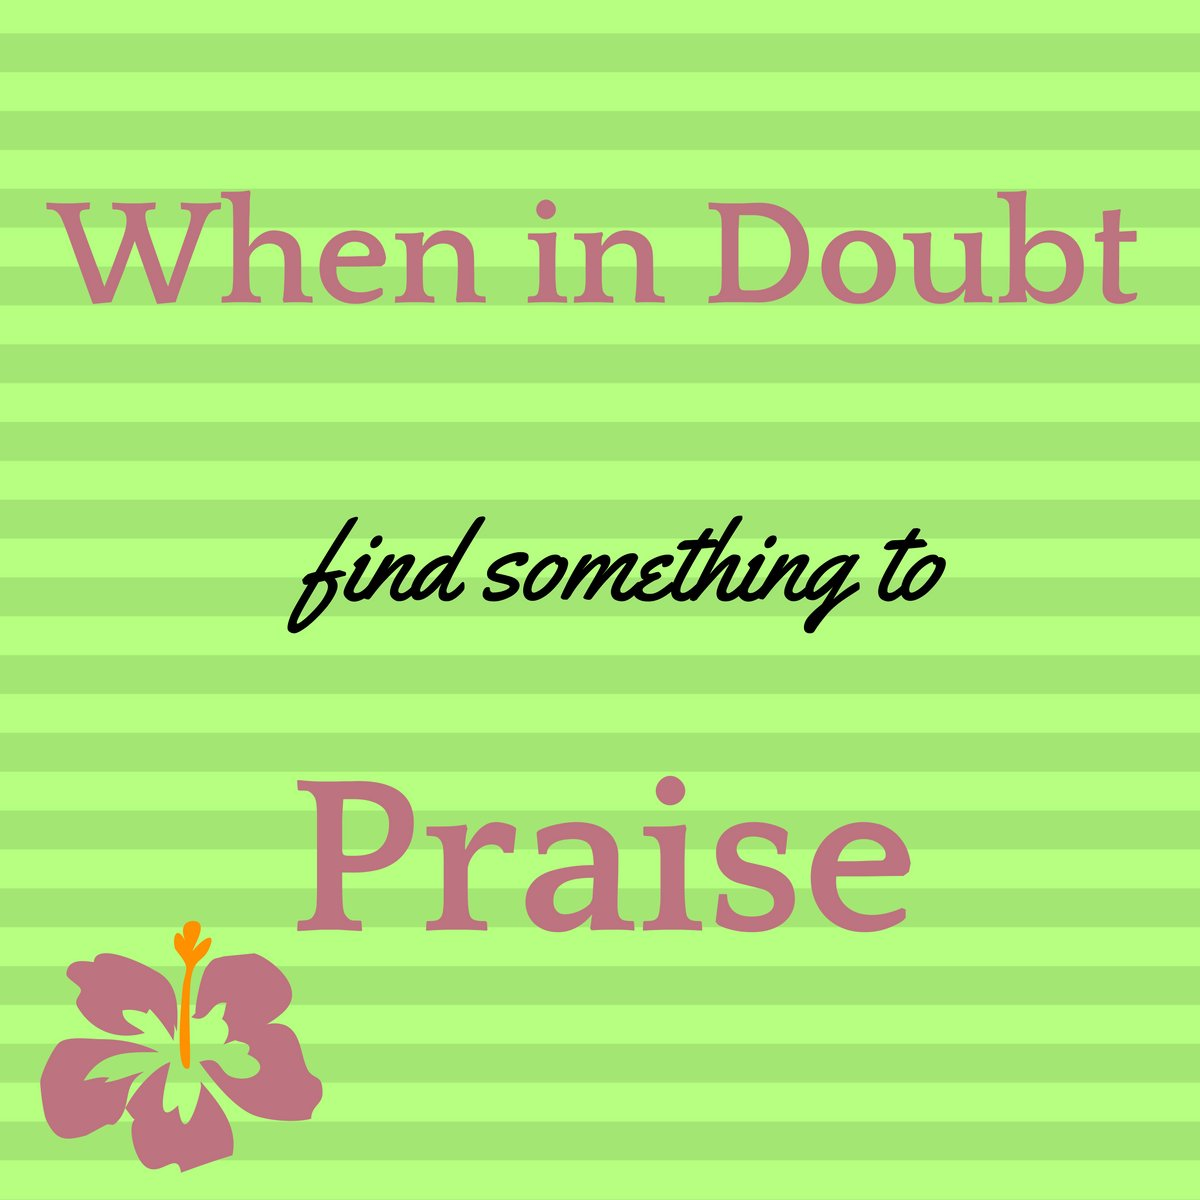 When in doubt, look for something to praise, it will make #you a better person. #quotes<br>http://pic.twitter.com/FlkFebmvzQ